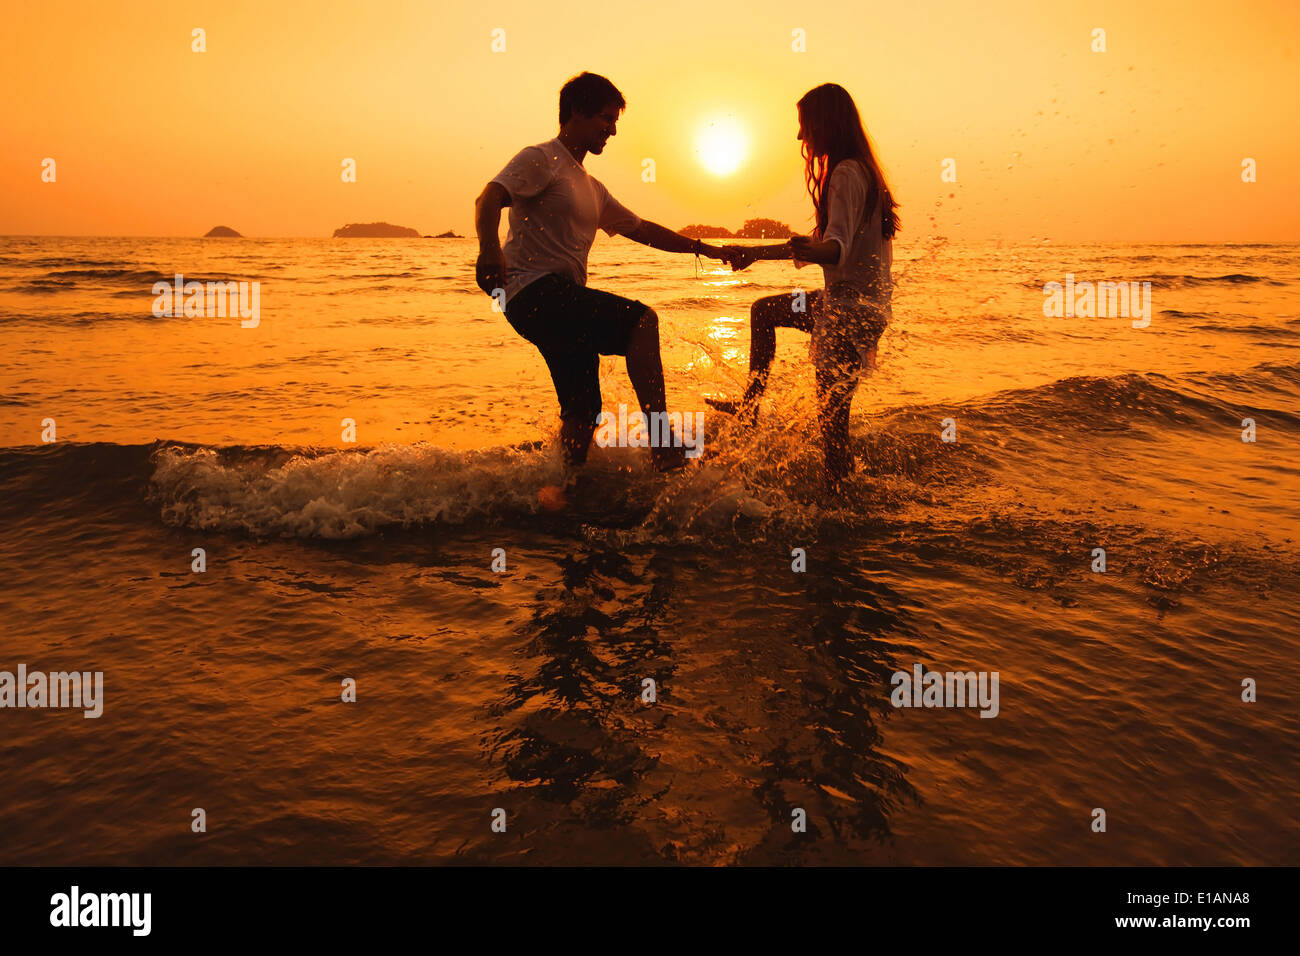 Couple having fun in the sea at sunset beach Photo Stock